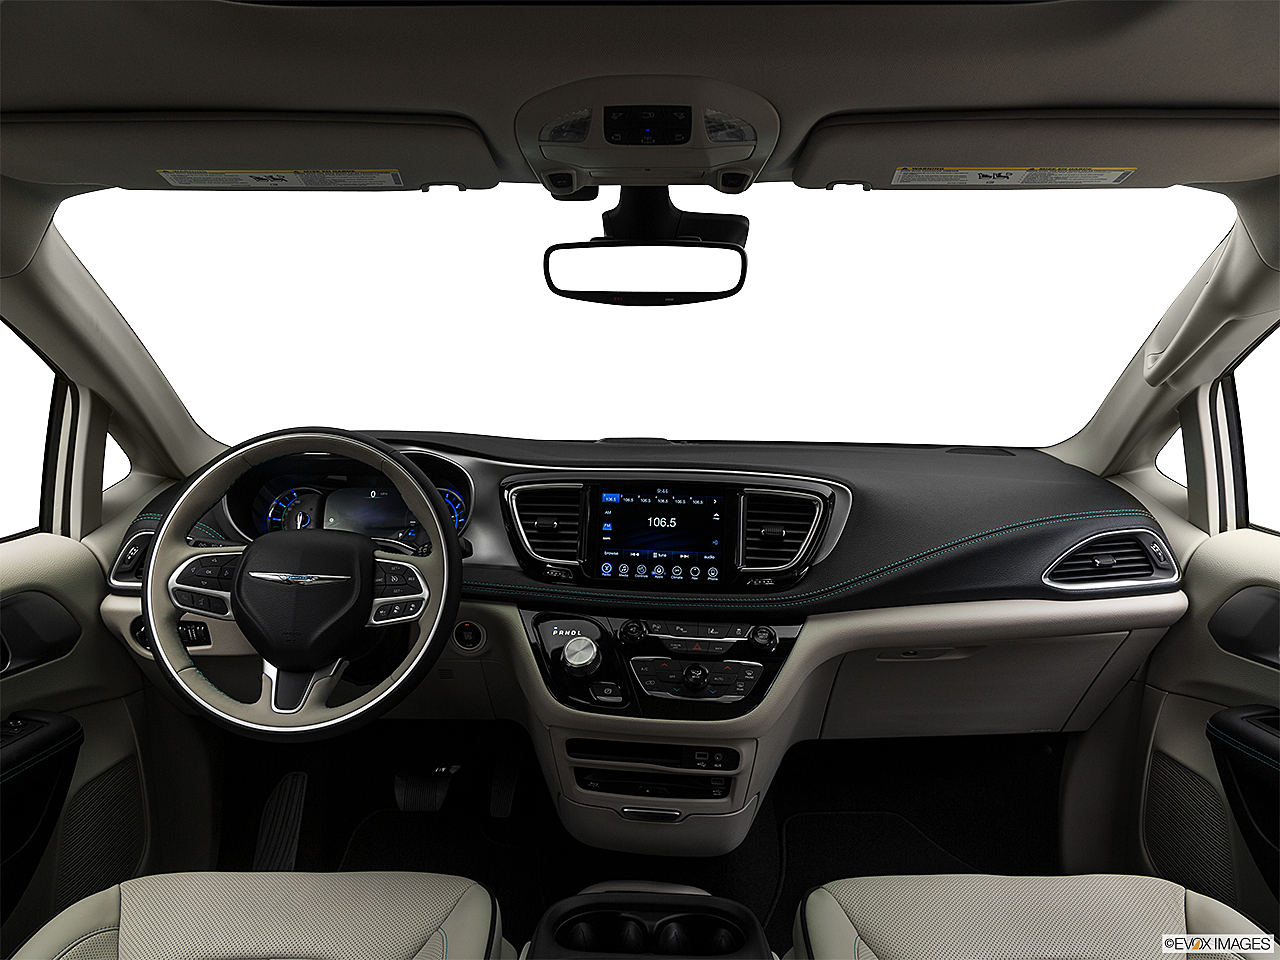 2017 Chrysler Pacifica Hybrid Platinum Centered Wide Dash Shot